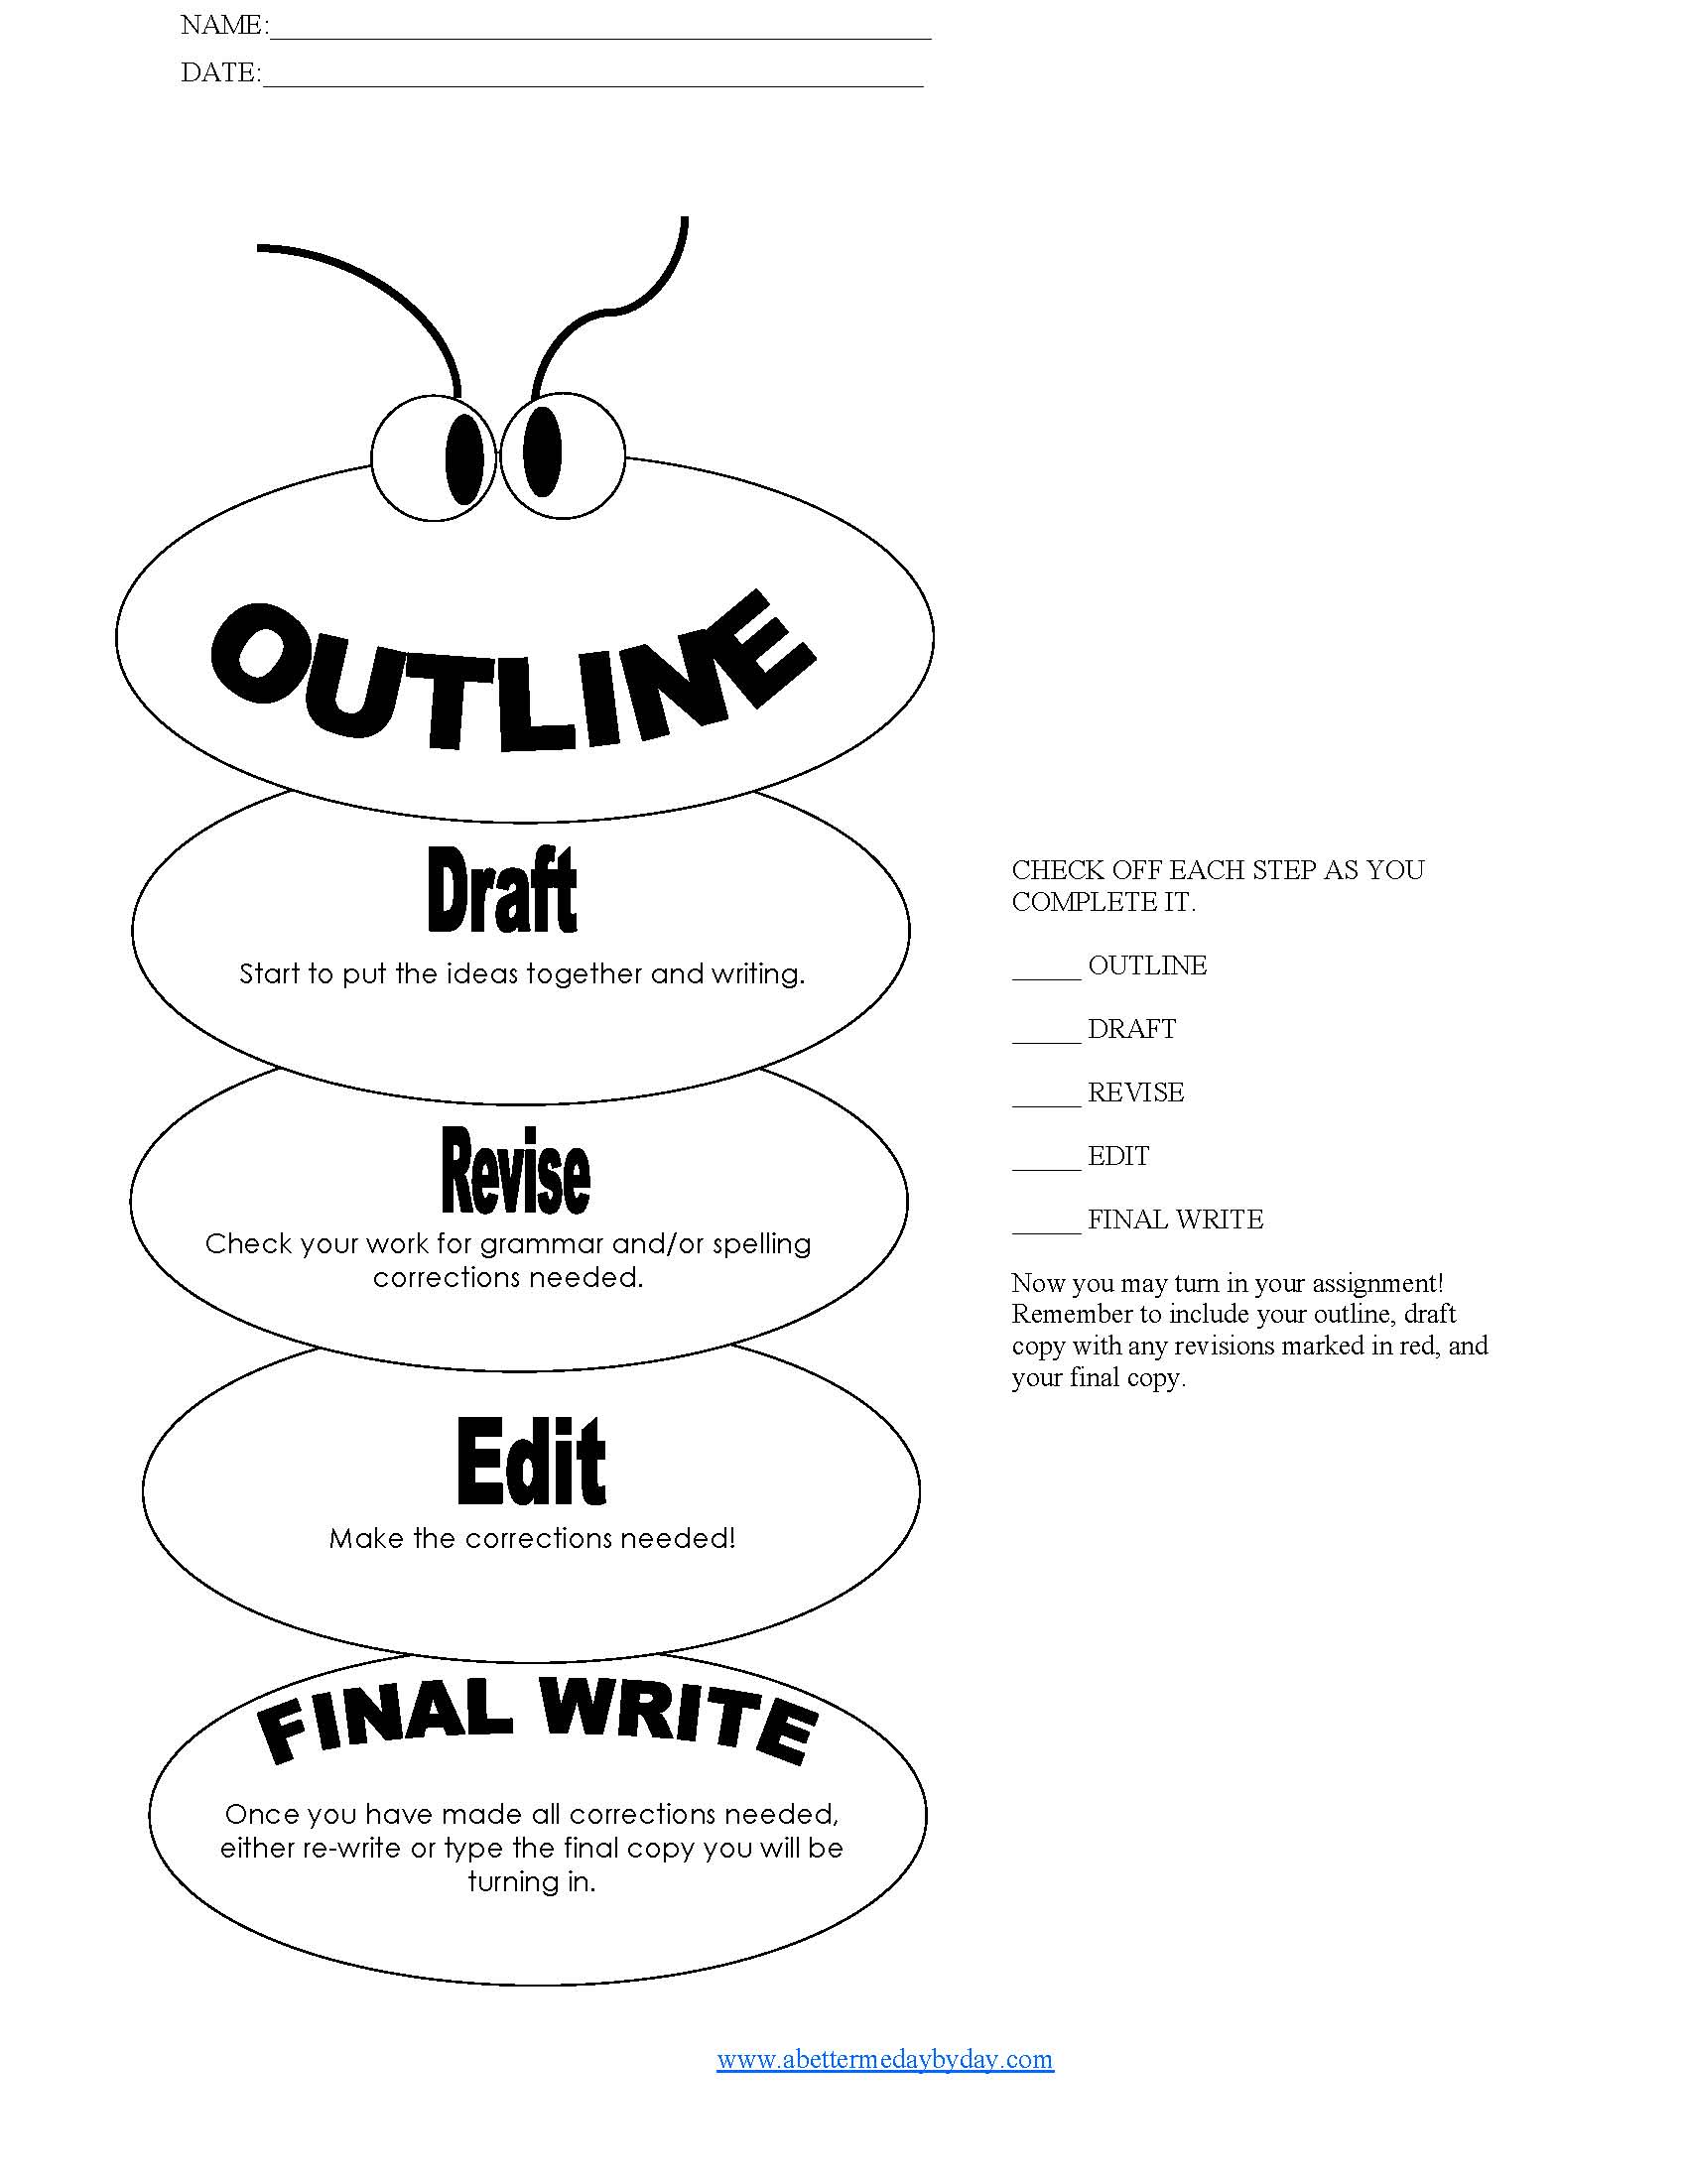 essay types - Outline Of Essay Example